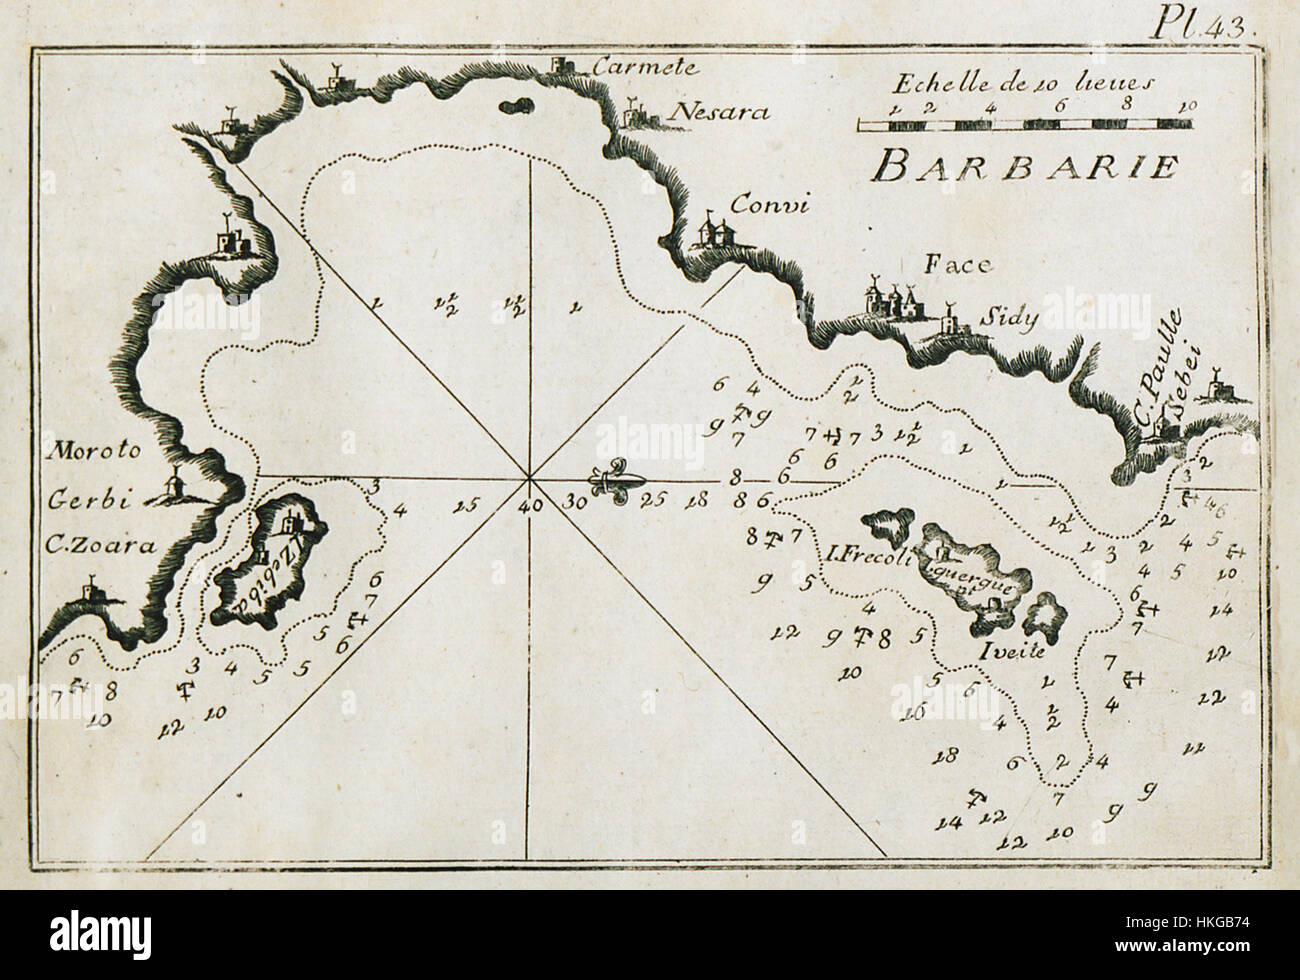 Map of part of the bay of Gabes near Sidi Mansour and Sfax Tunisia